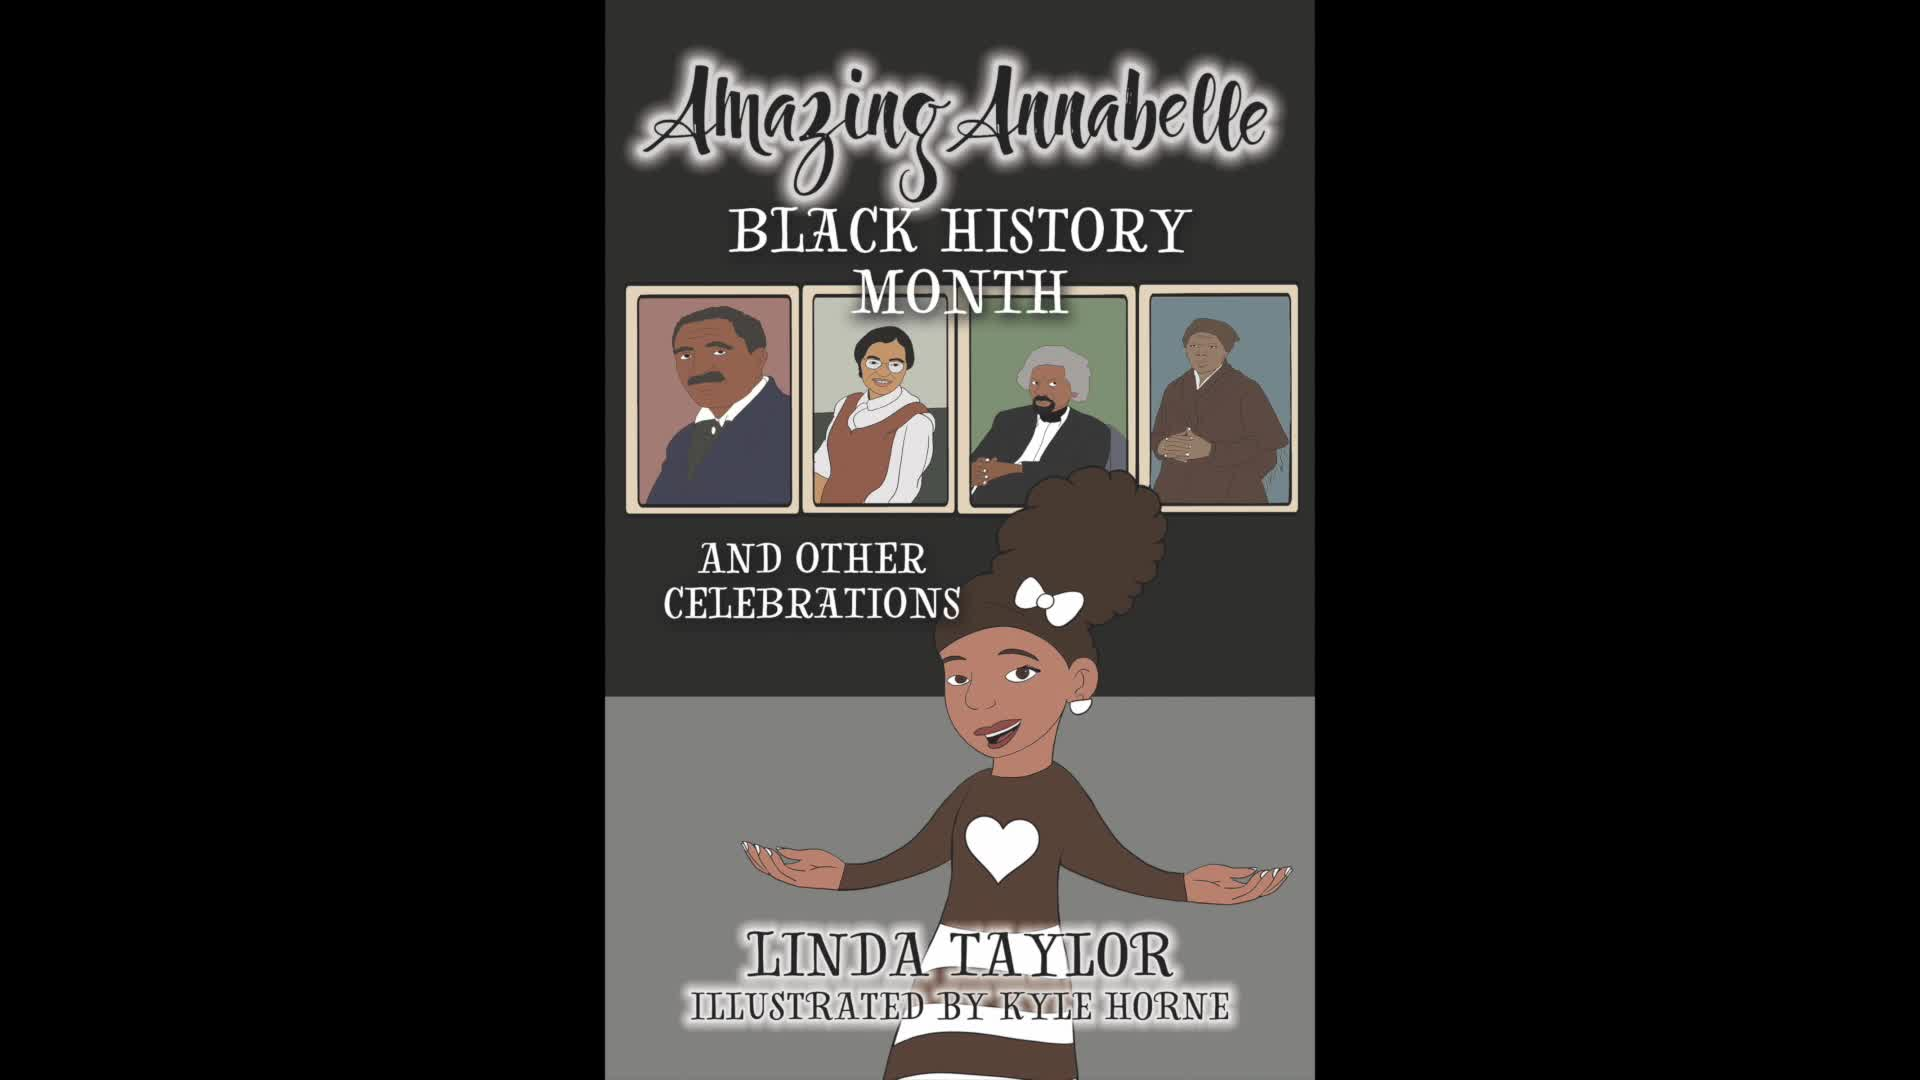 Amazing Annabelle Black History Month Chapter 4